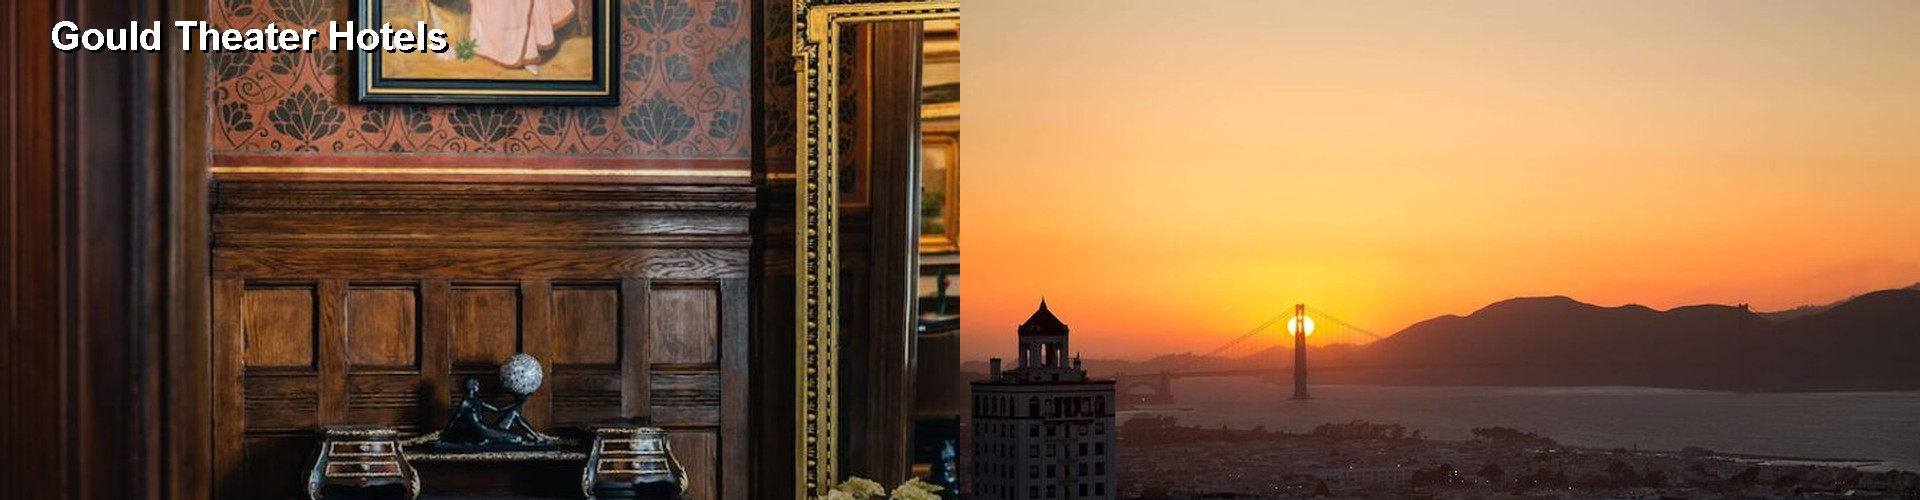 5 Best Hotels near Gould Theater